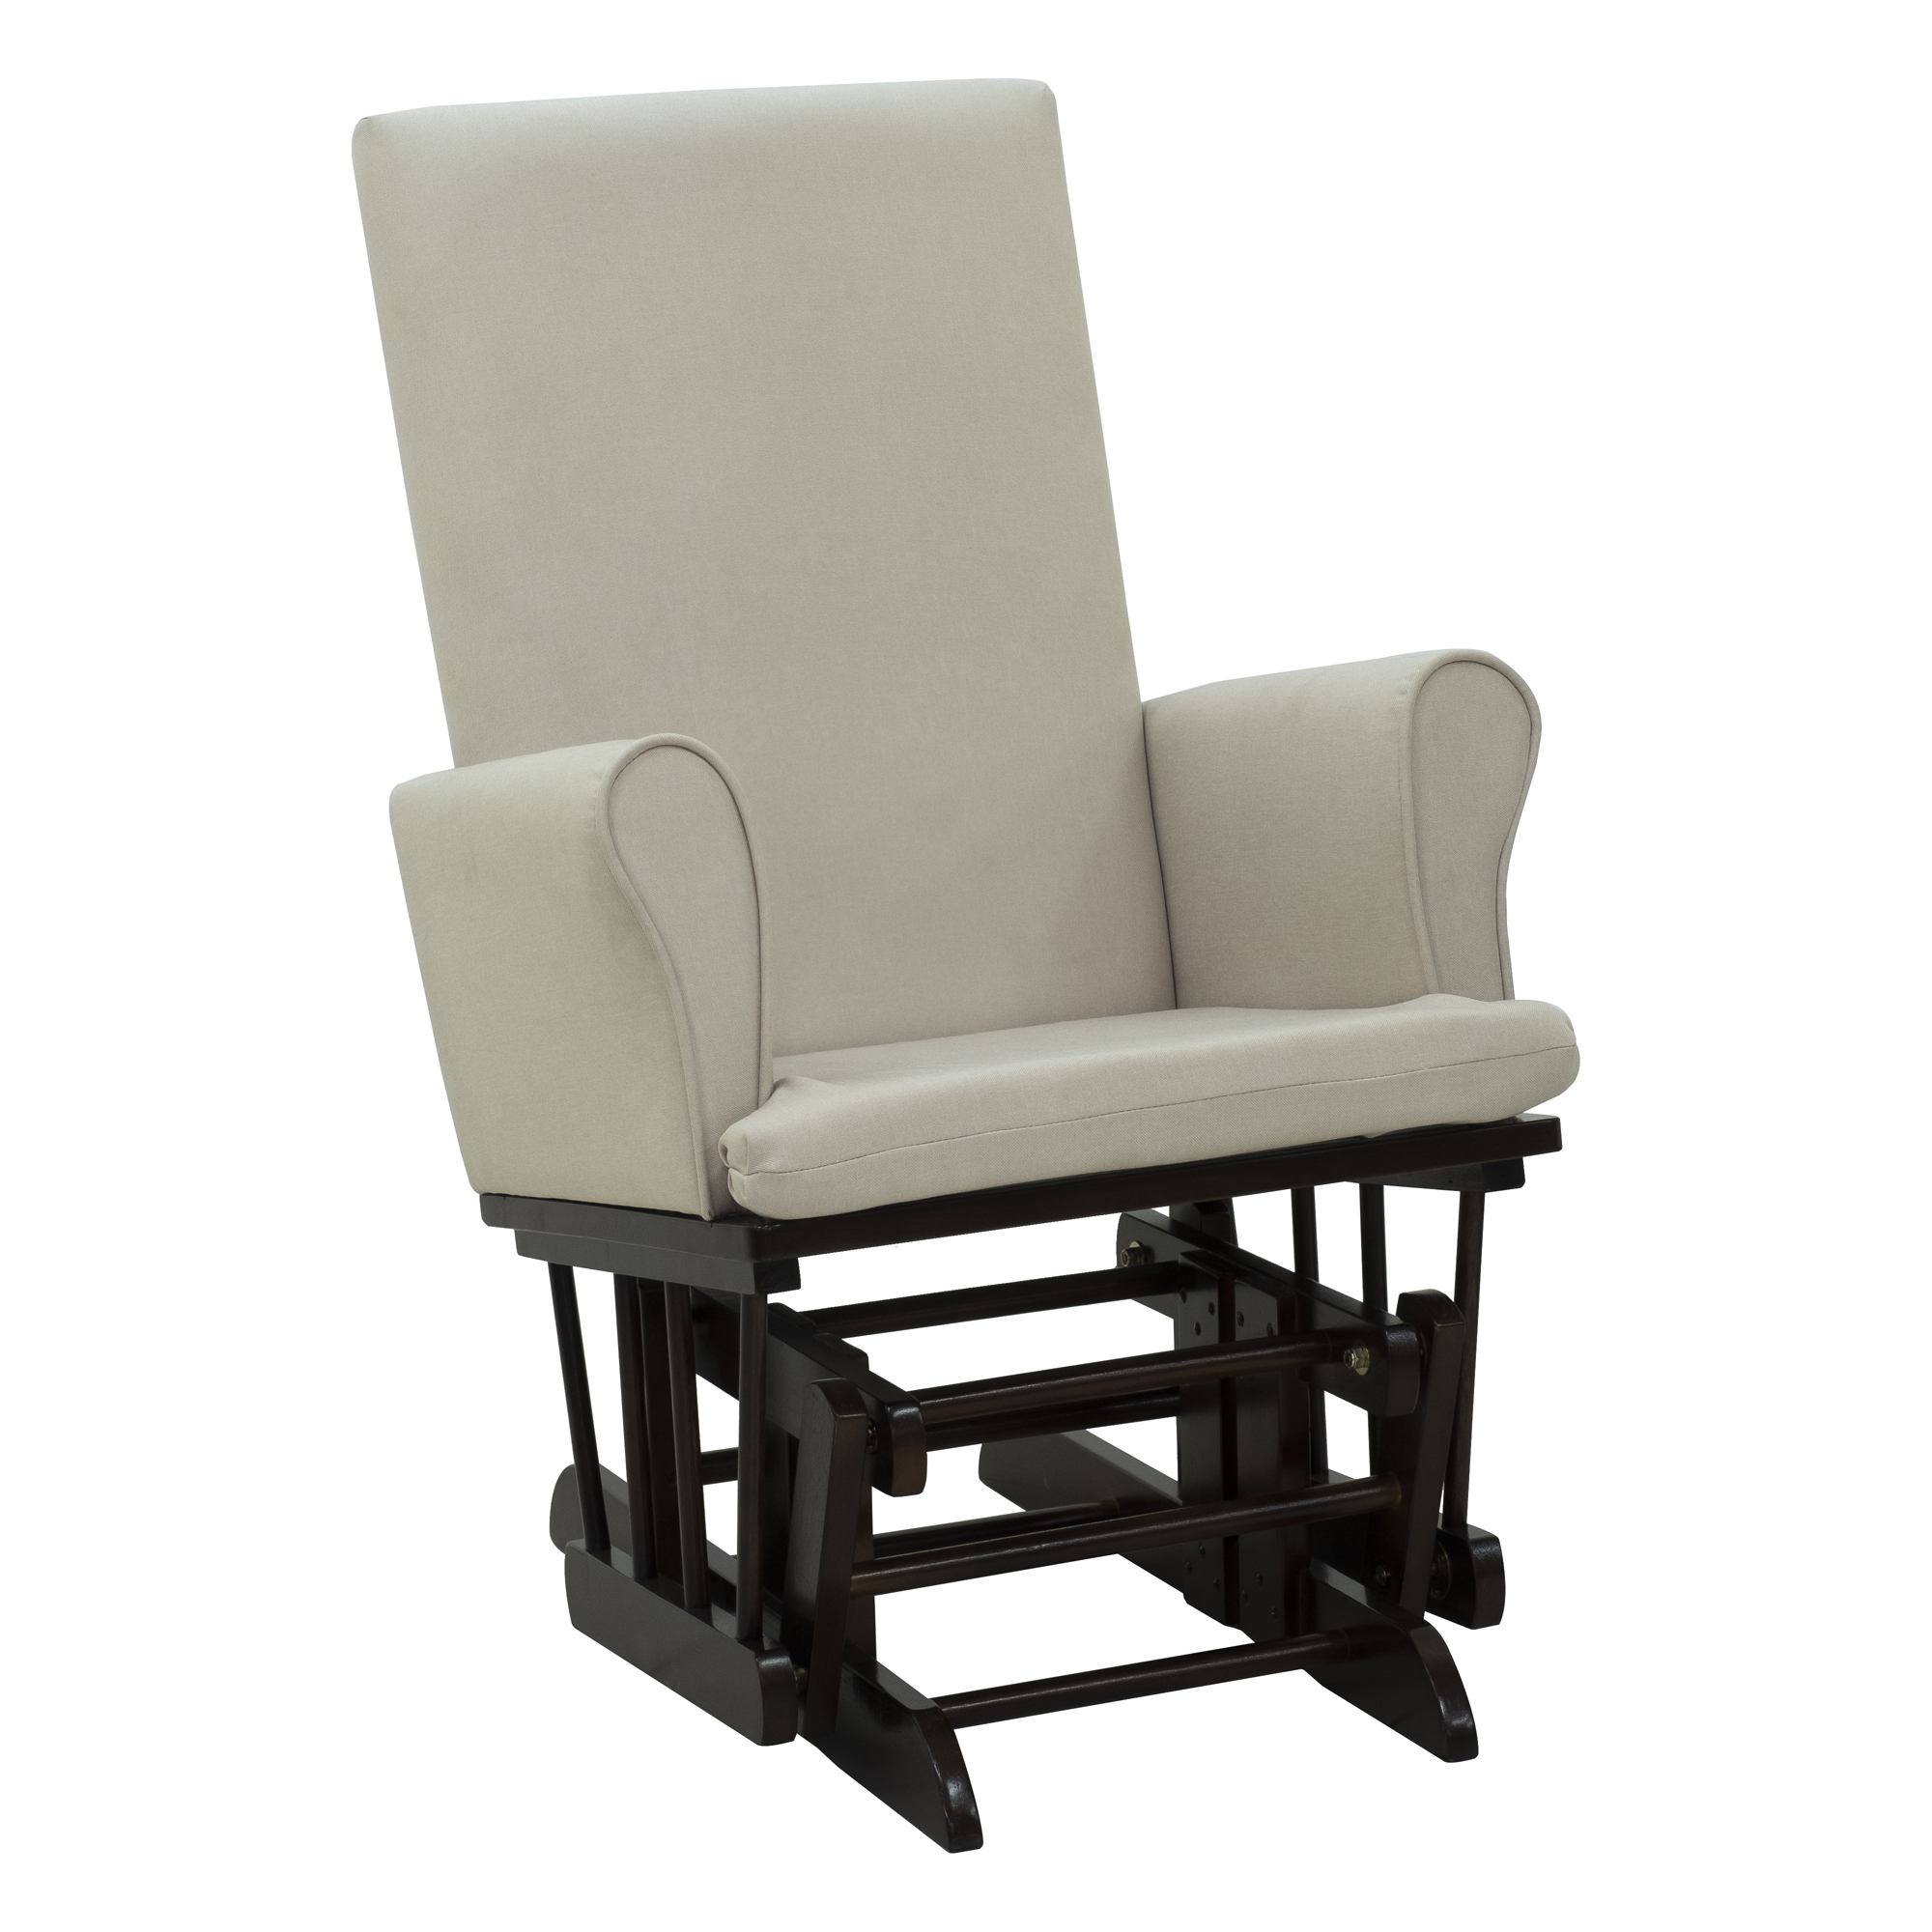 Baby Rocker Chair 2pc Baby Nursery Relax Rocker Rocking Chair Glider